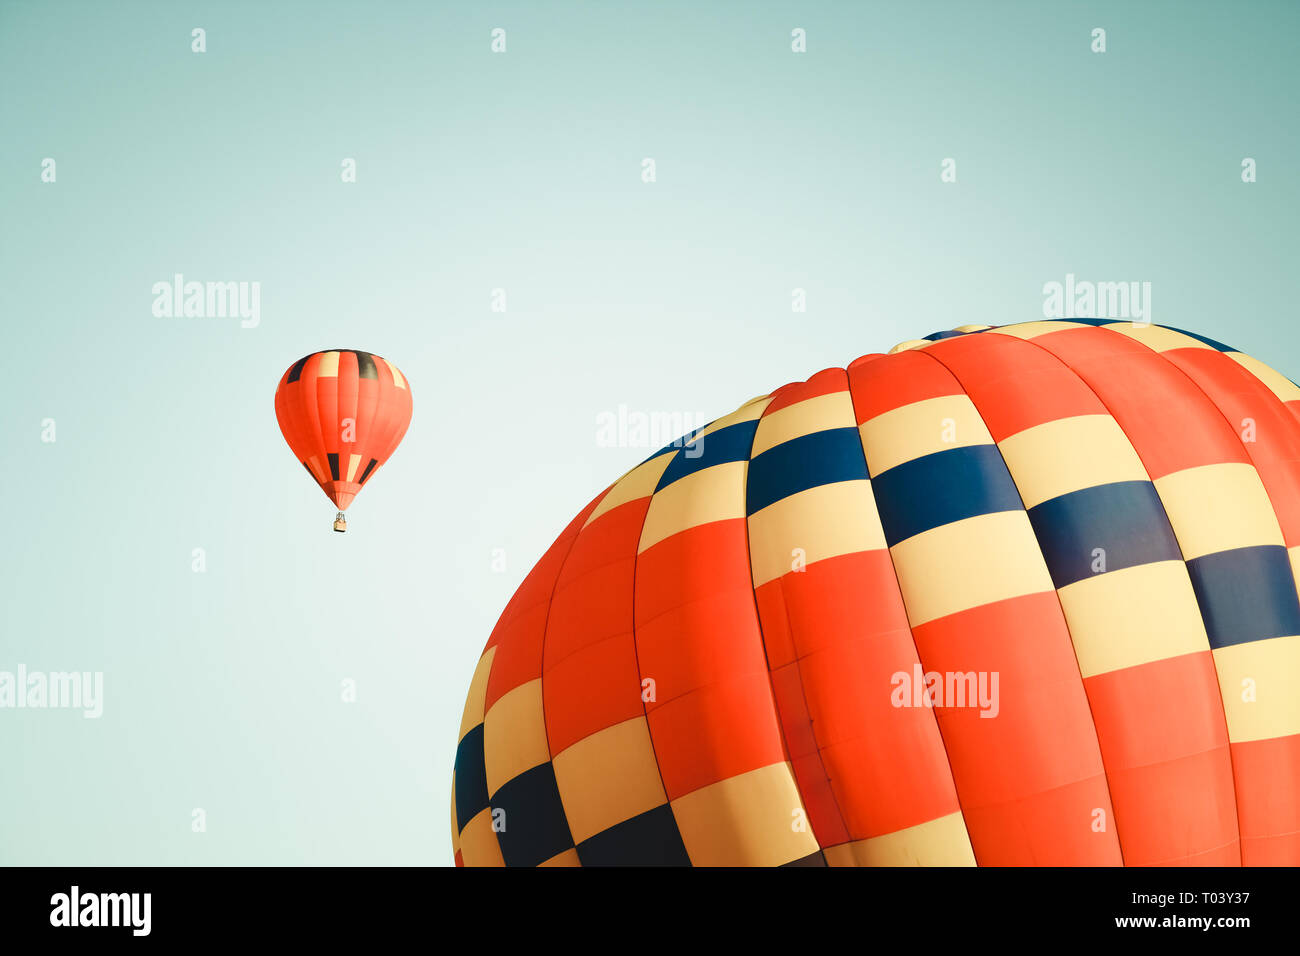 Two vibrant hot air balloons in clear sky, one close and one far. Stock Photo